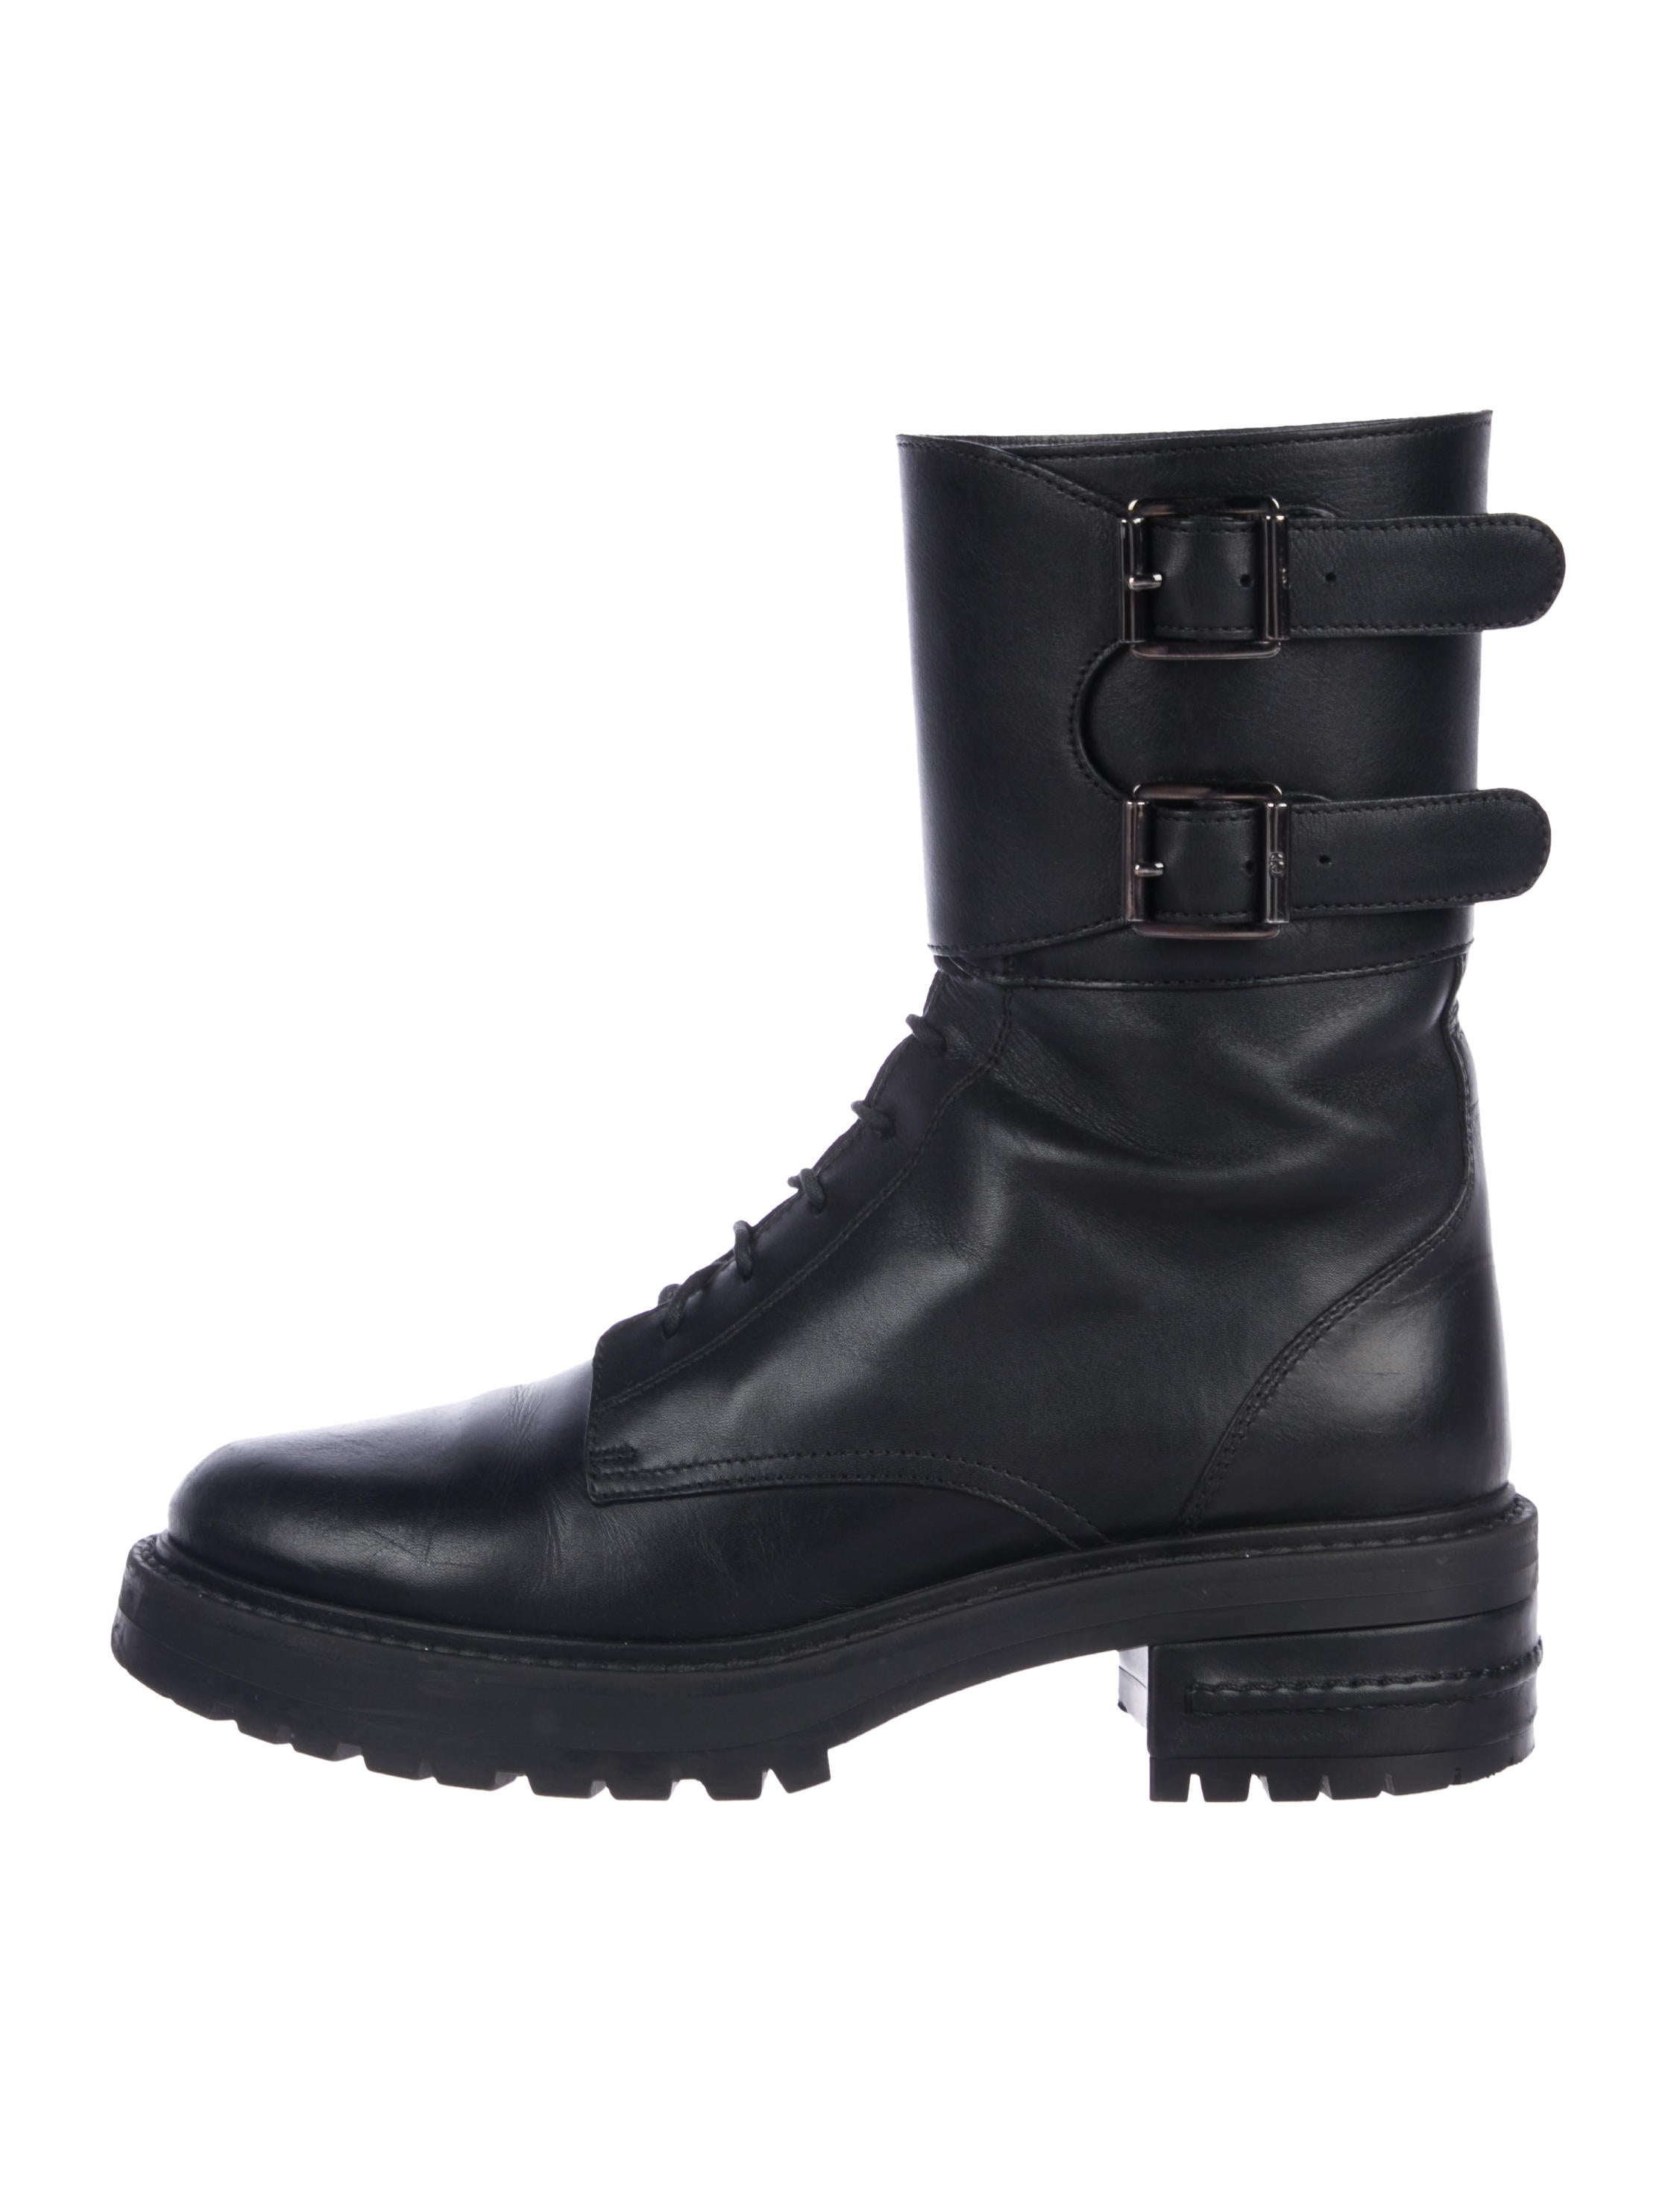 Leather Mid Calf Boots by Christian Dior